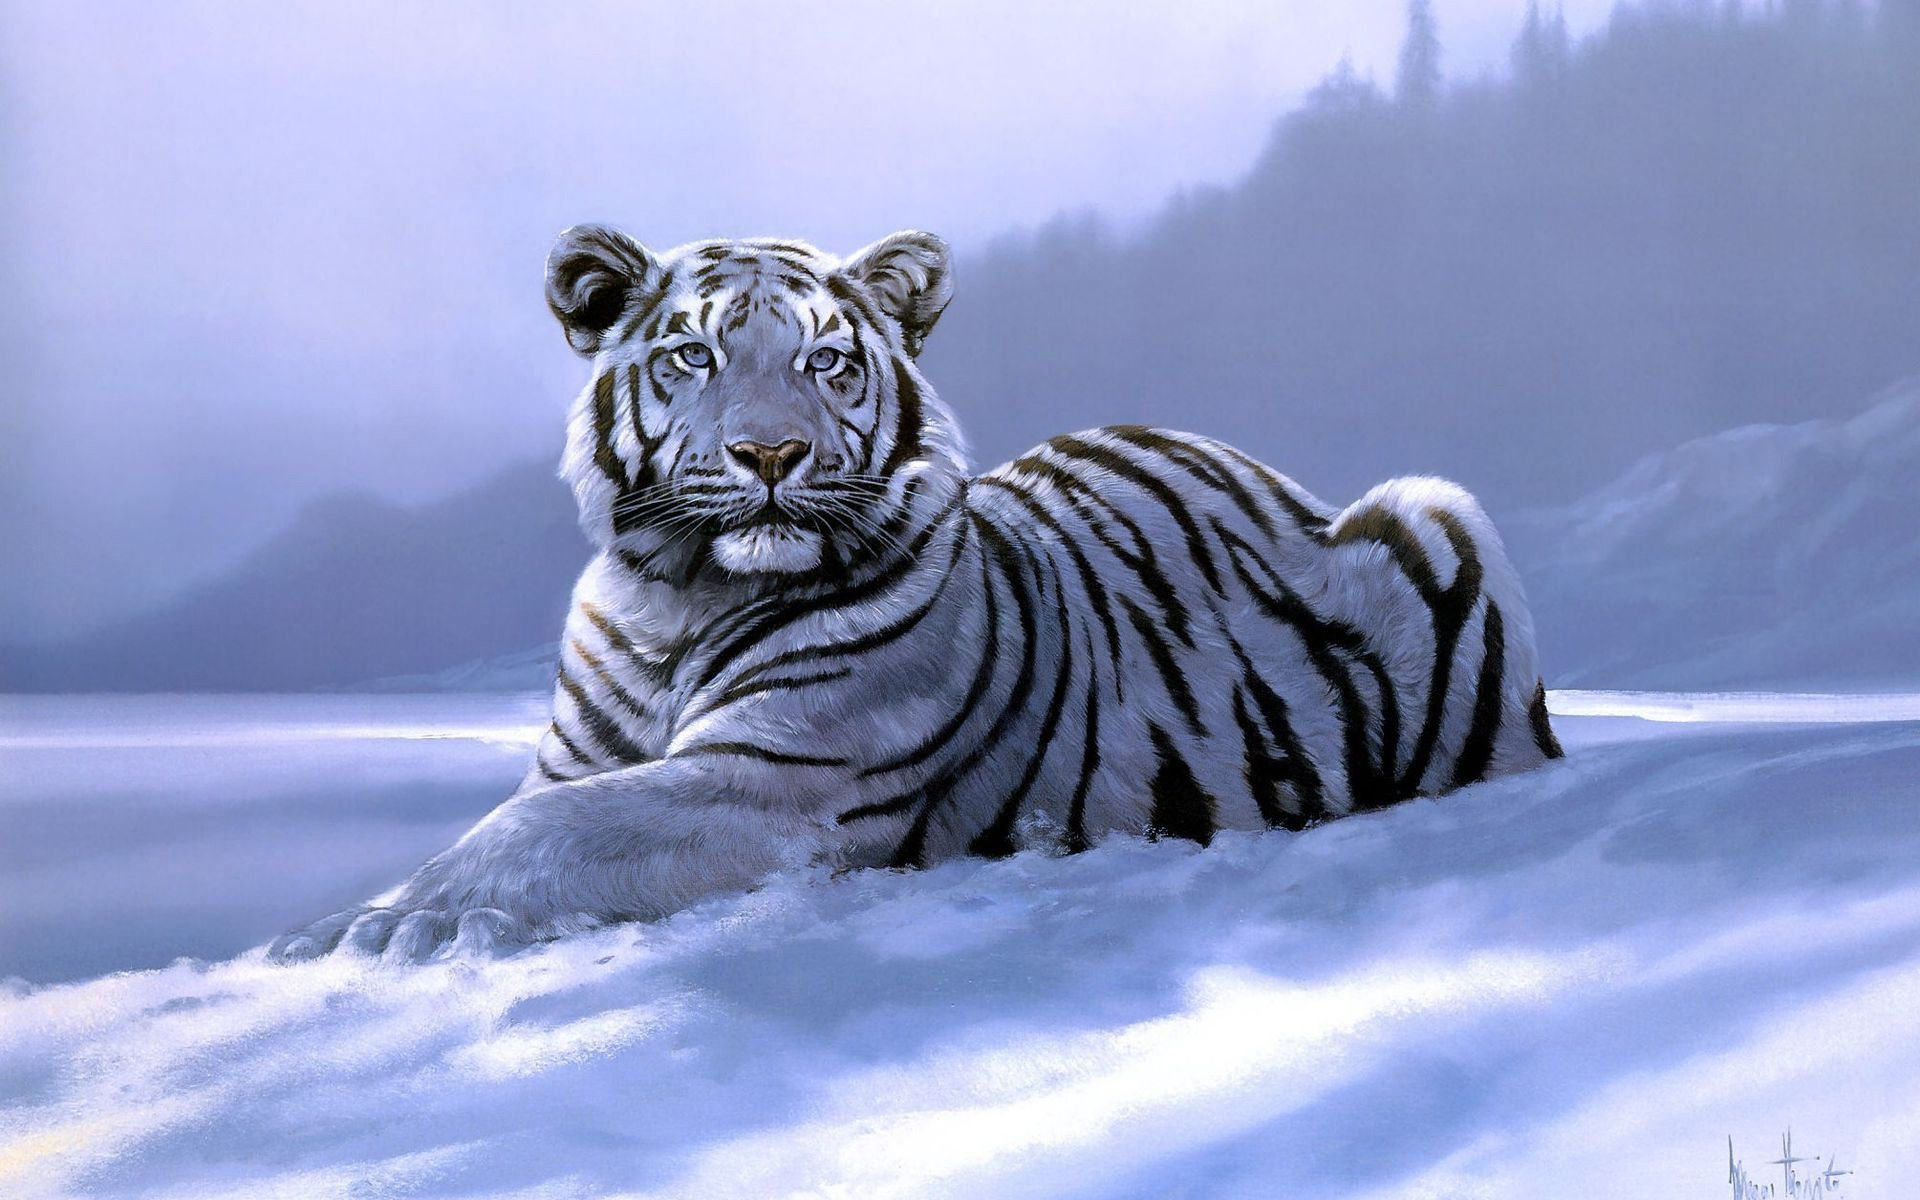 tiger wallpaper android apps on google play 1920a—1080 tiger wallpaper 32 wallpapers